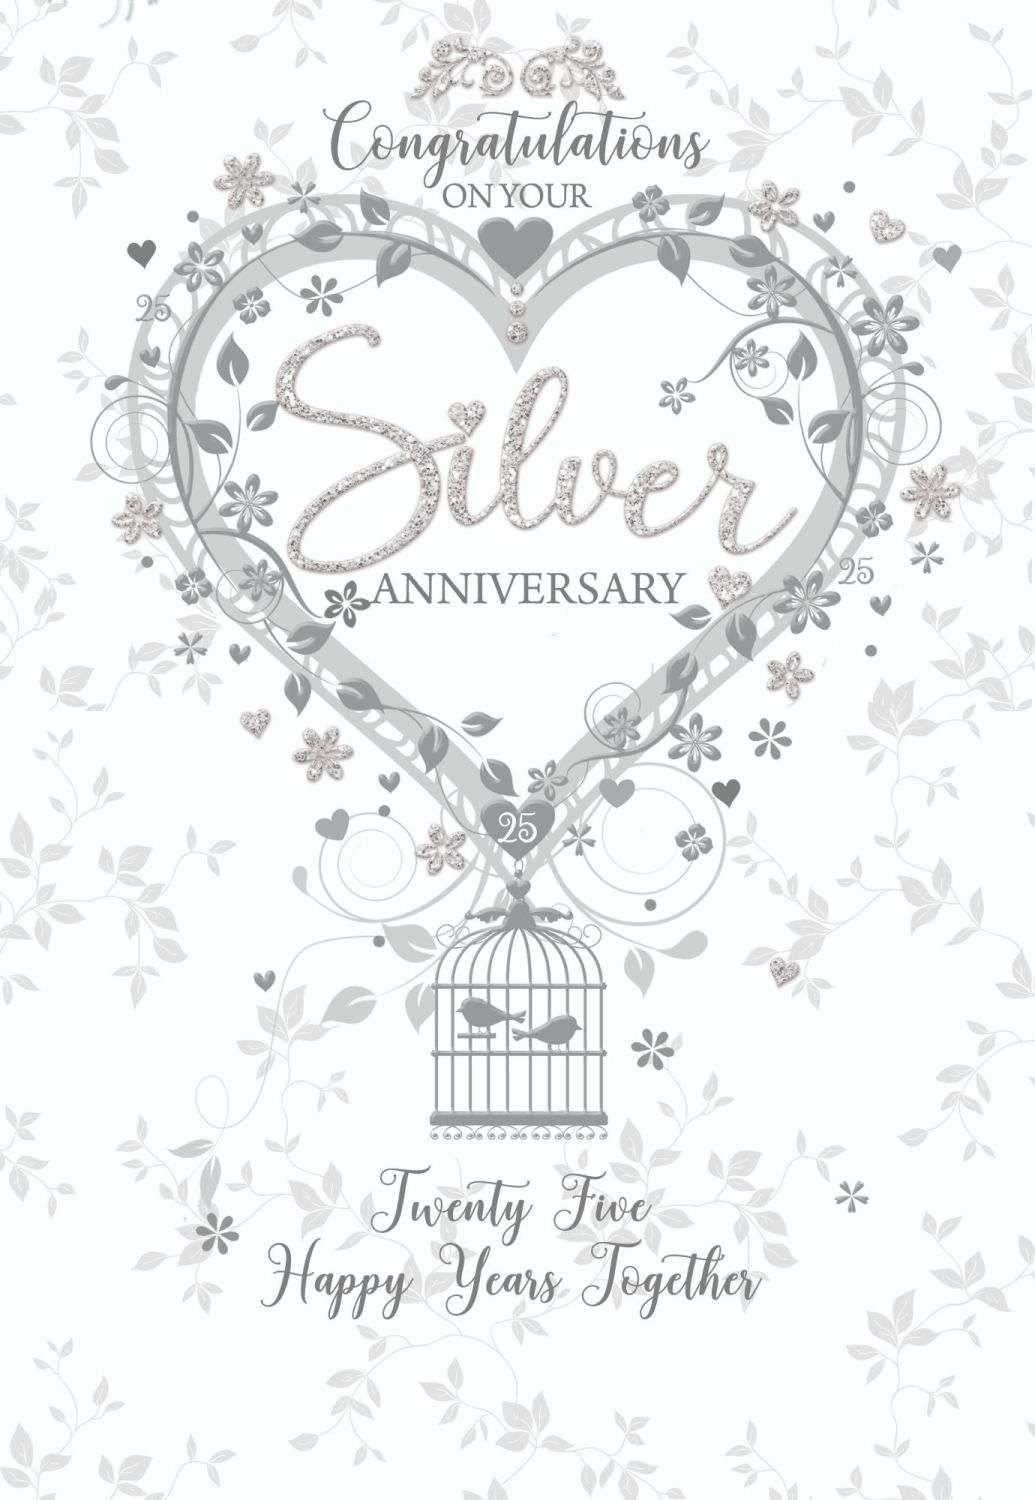 Silver Wedding Cards - TWENTY Five HAPPY Years TOGETHER - 25th ANNIVERSARY